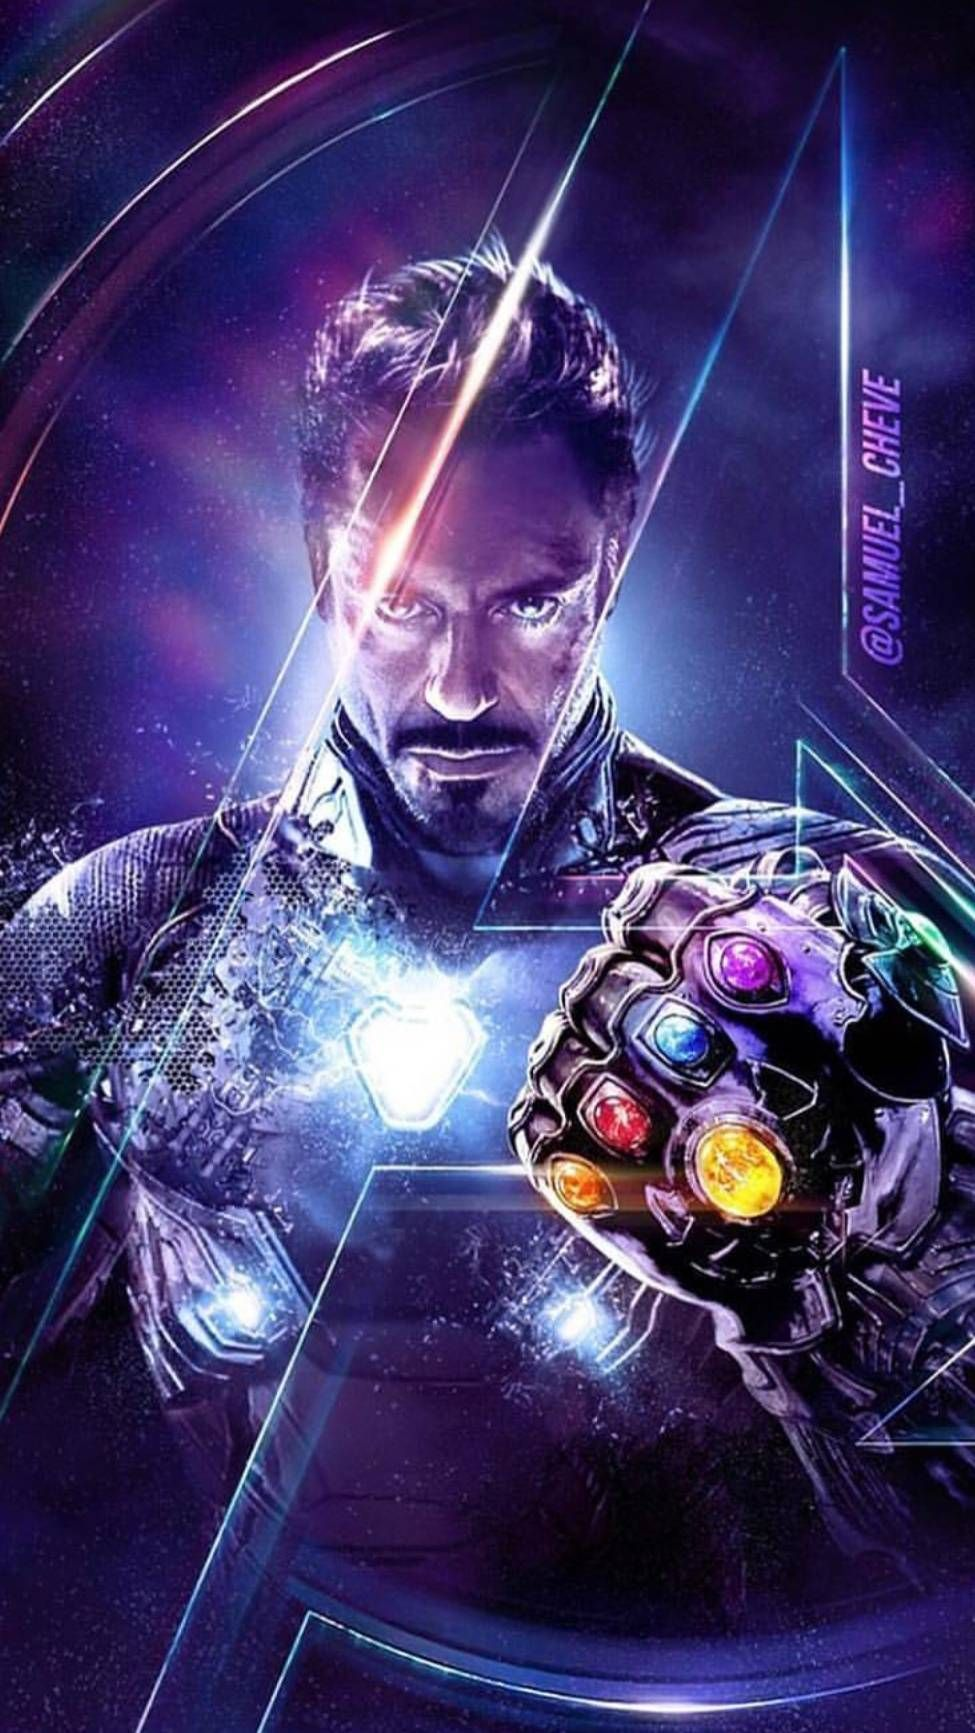 Endgame Tony Stark Infinity Stones Iphone Wallpaper In 2020 Iron Man Avengers Marvel Wallpaper Avengers Wallpaper